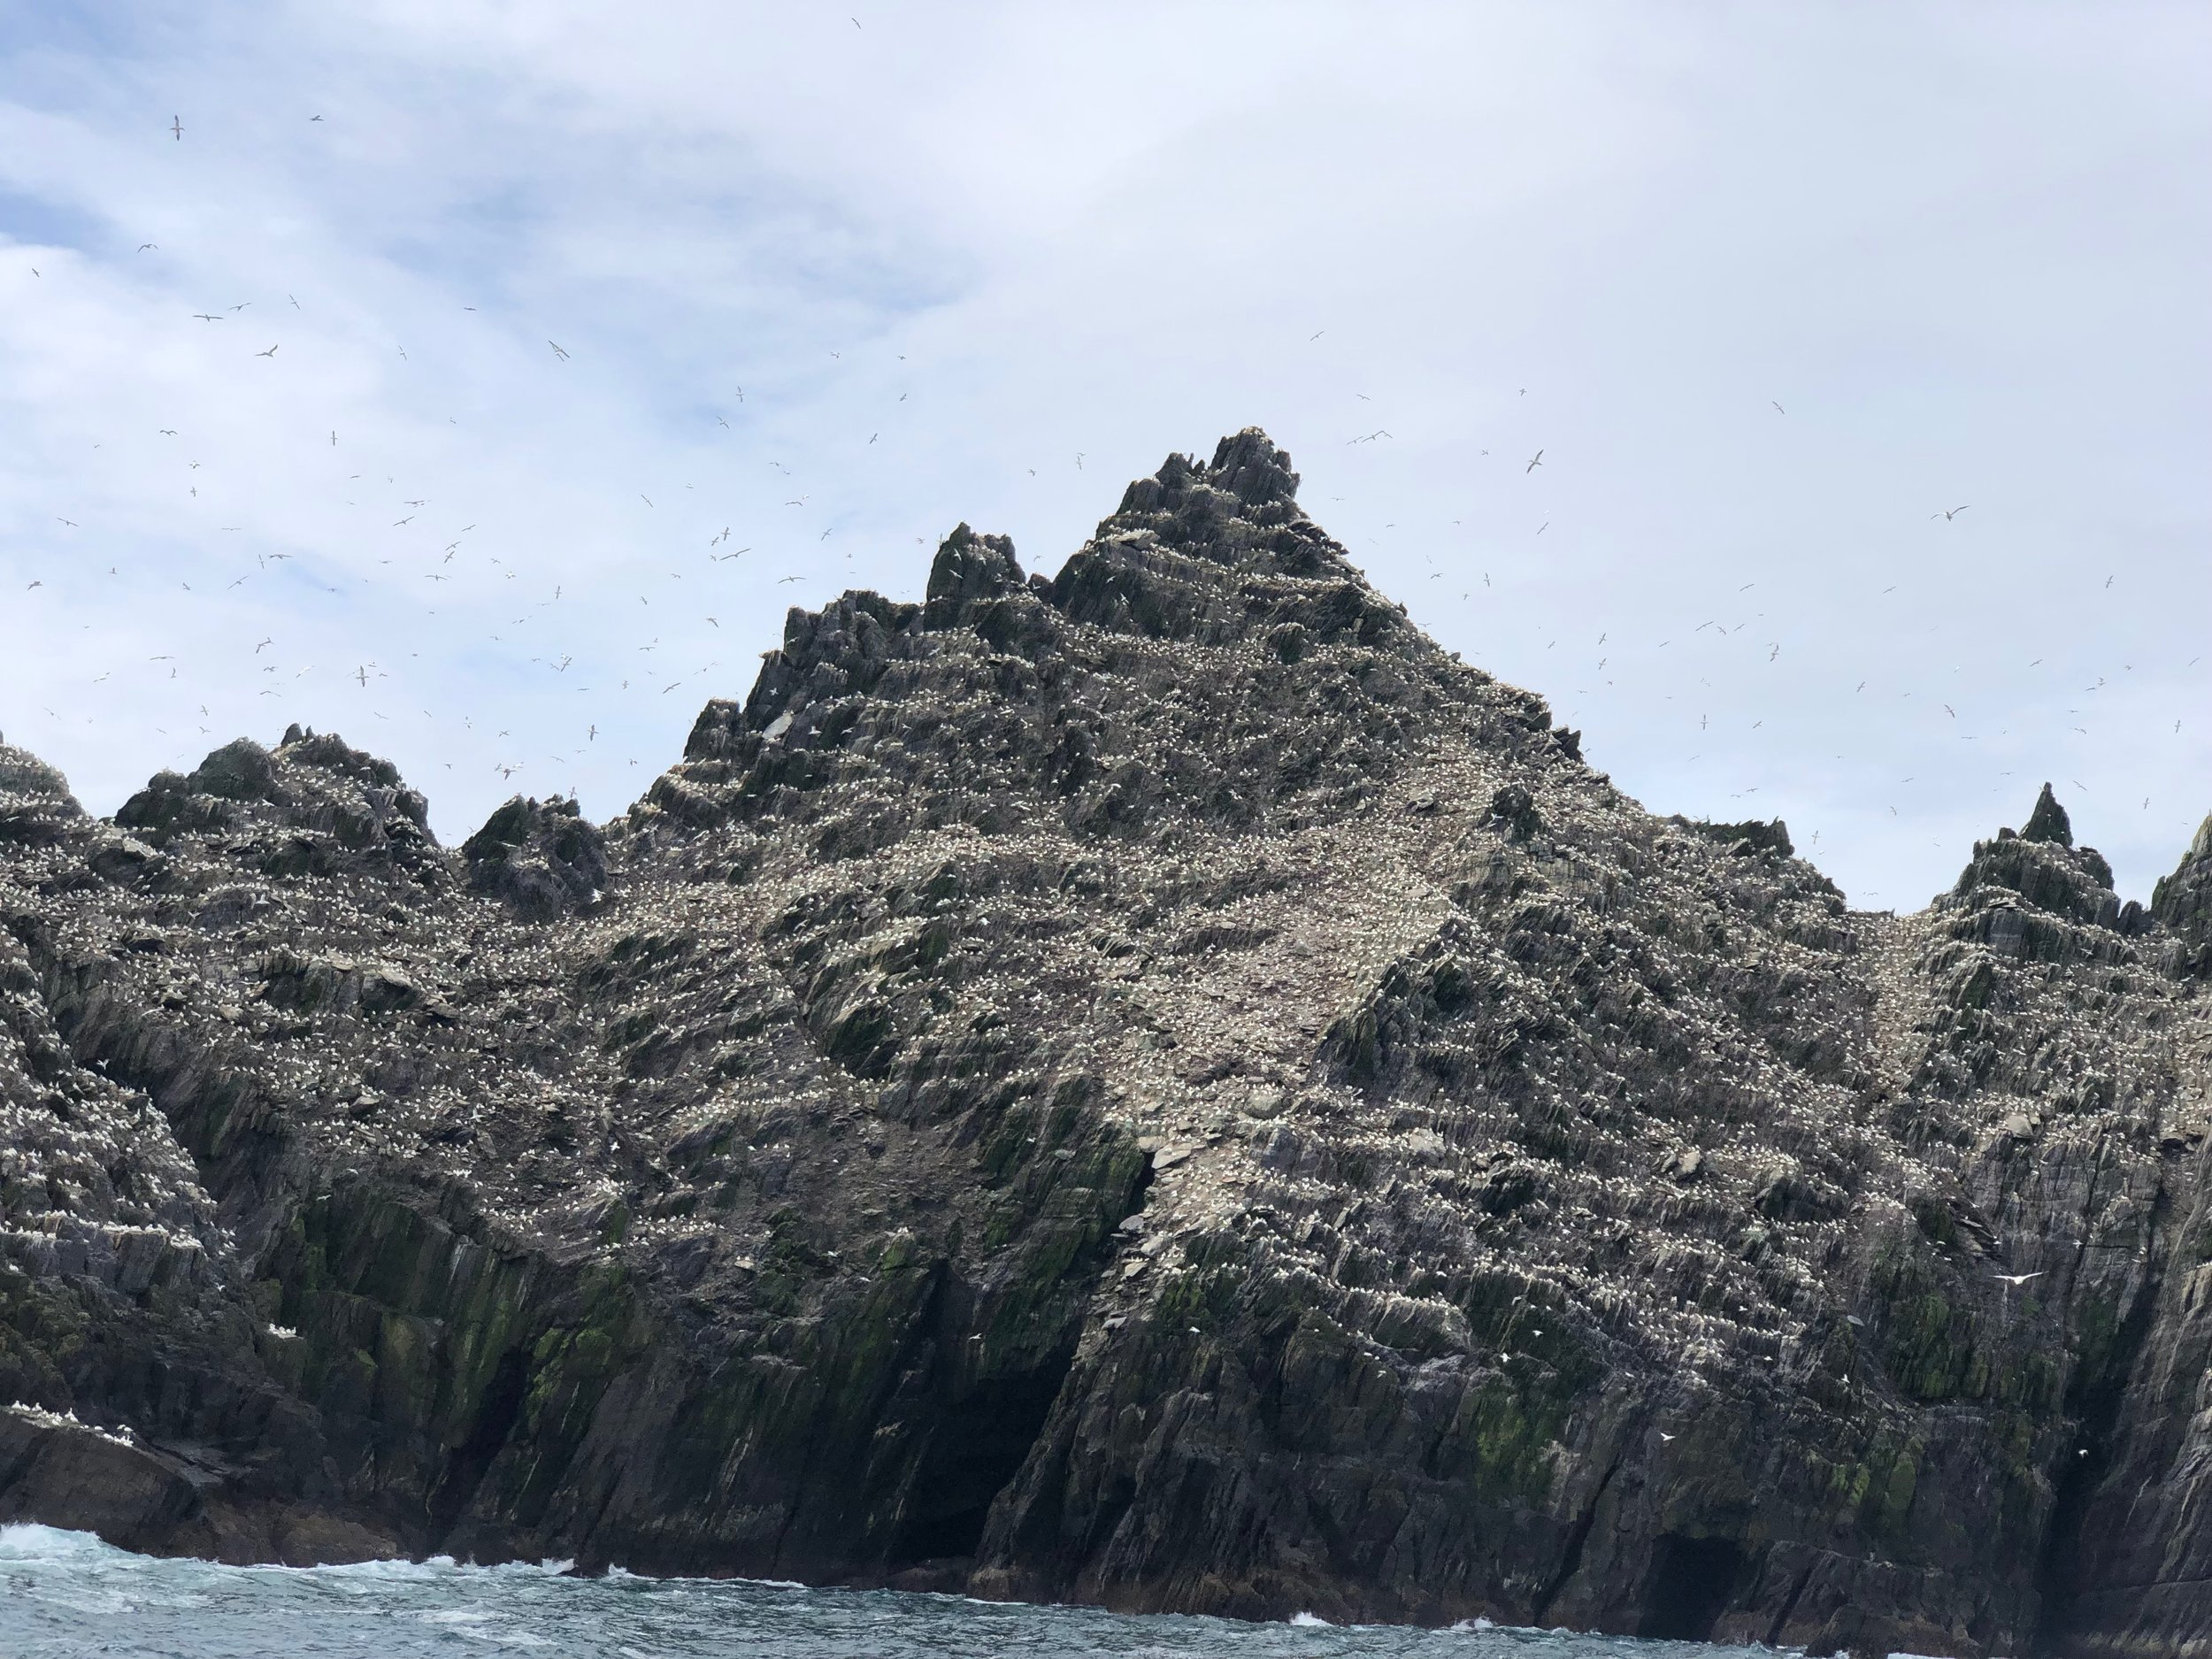 This island near Skellig Michael is home to a colony of 70,000 gannets. The gannets are the whit spots you see against the dark rock. Almost looked they had a recent snow fall.